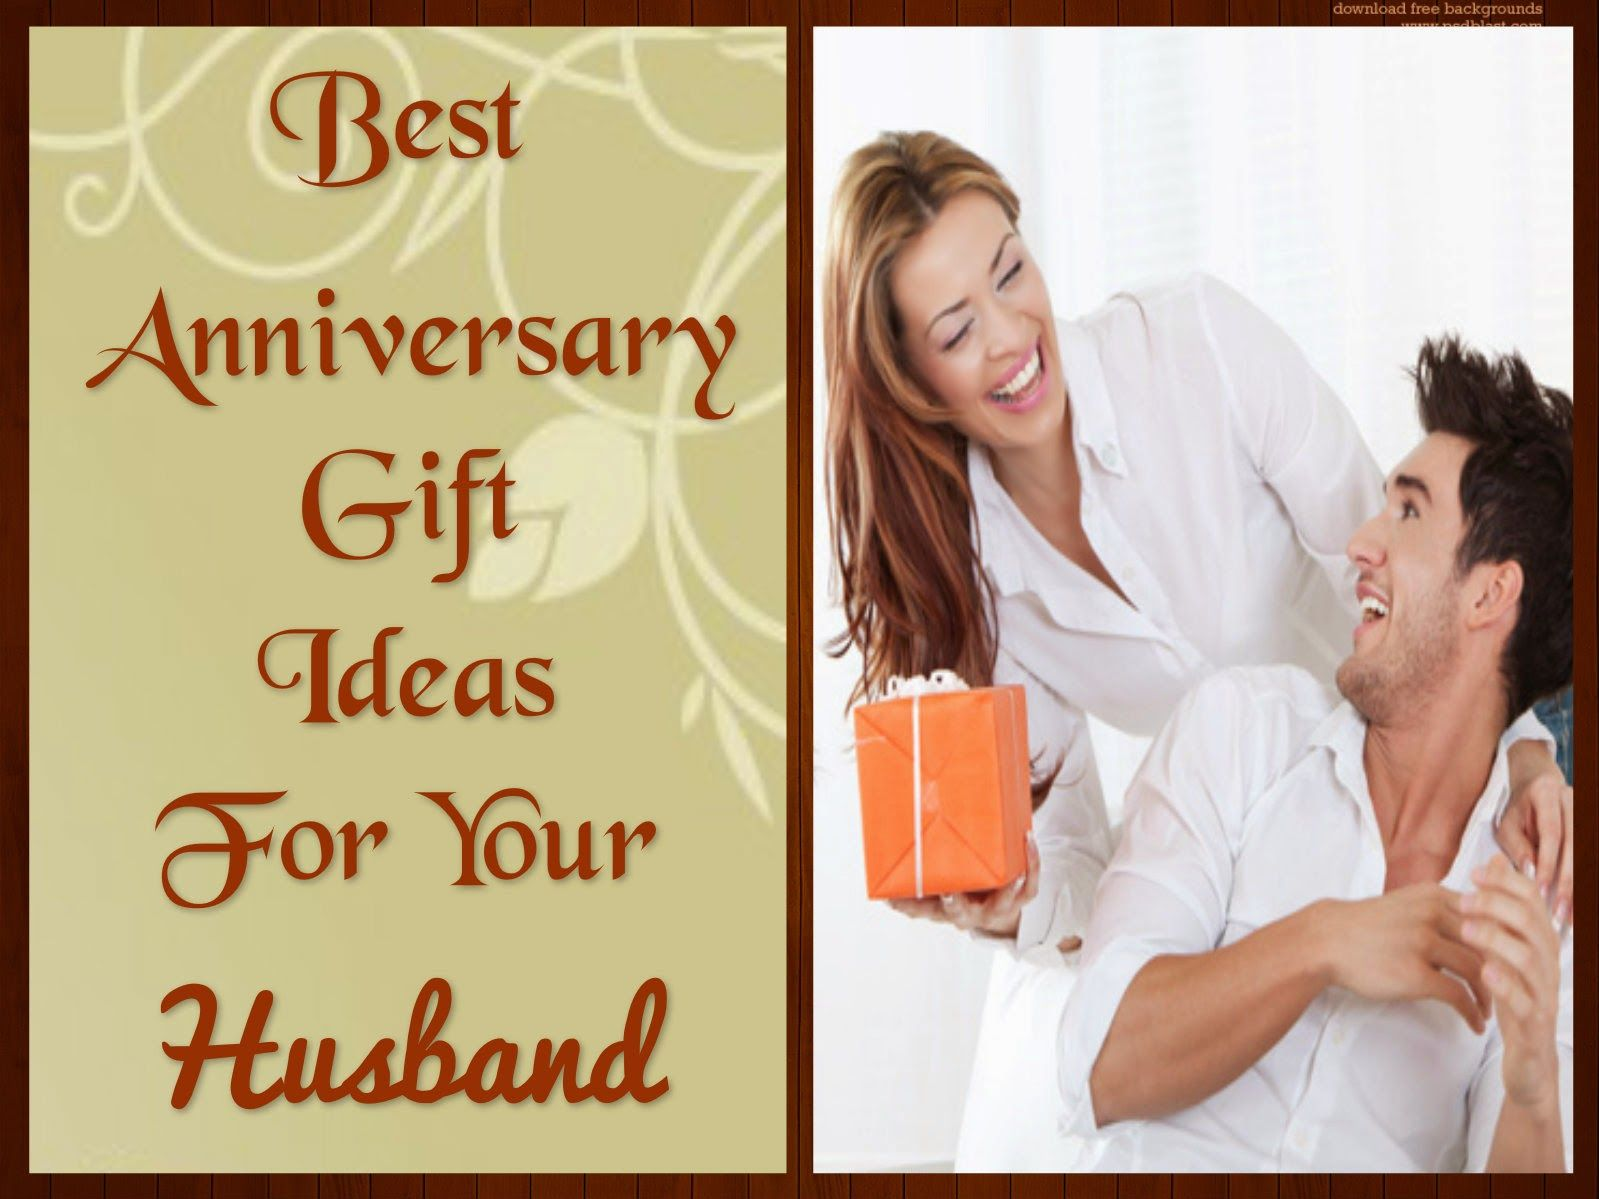 Wedding Anniversary Gifts Best Gift Ideas For Your Husband Anniversaryhusband